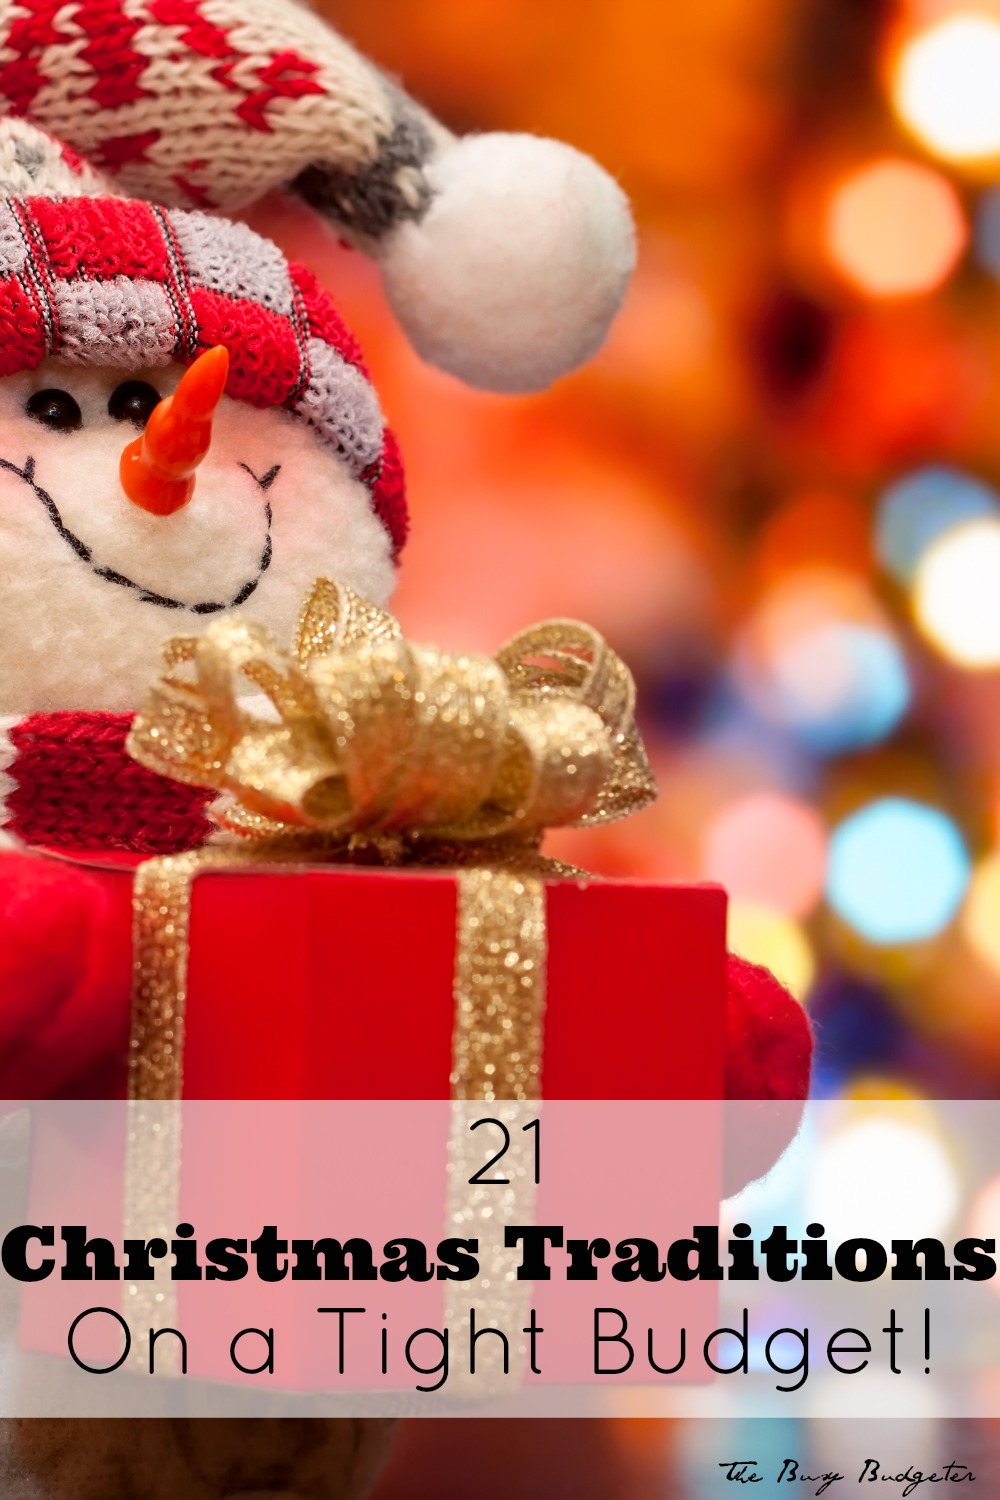 21 Christmas Traditions To Enjoy On a Tight Budget!